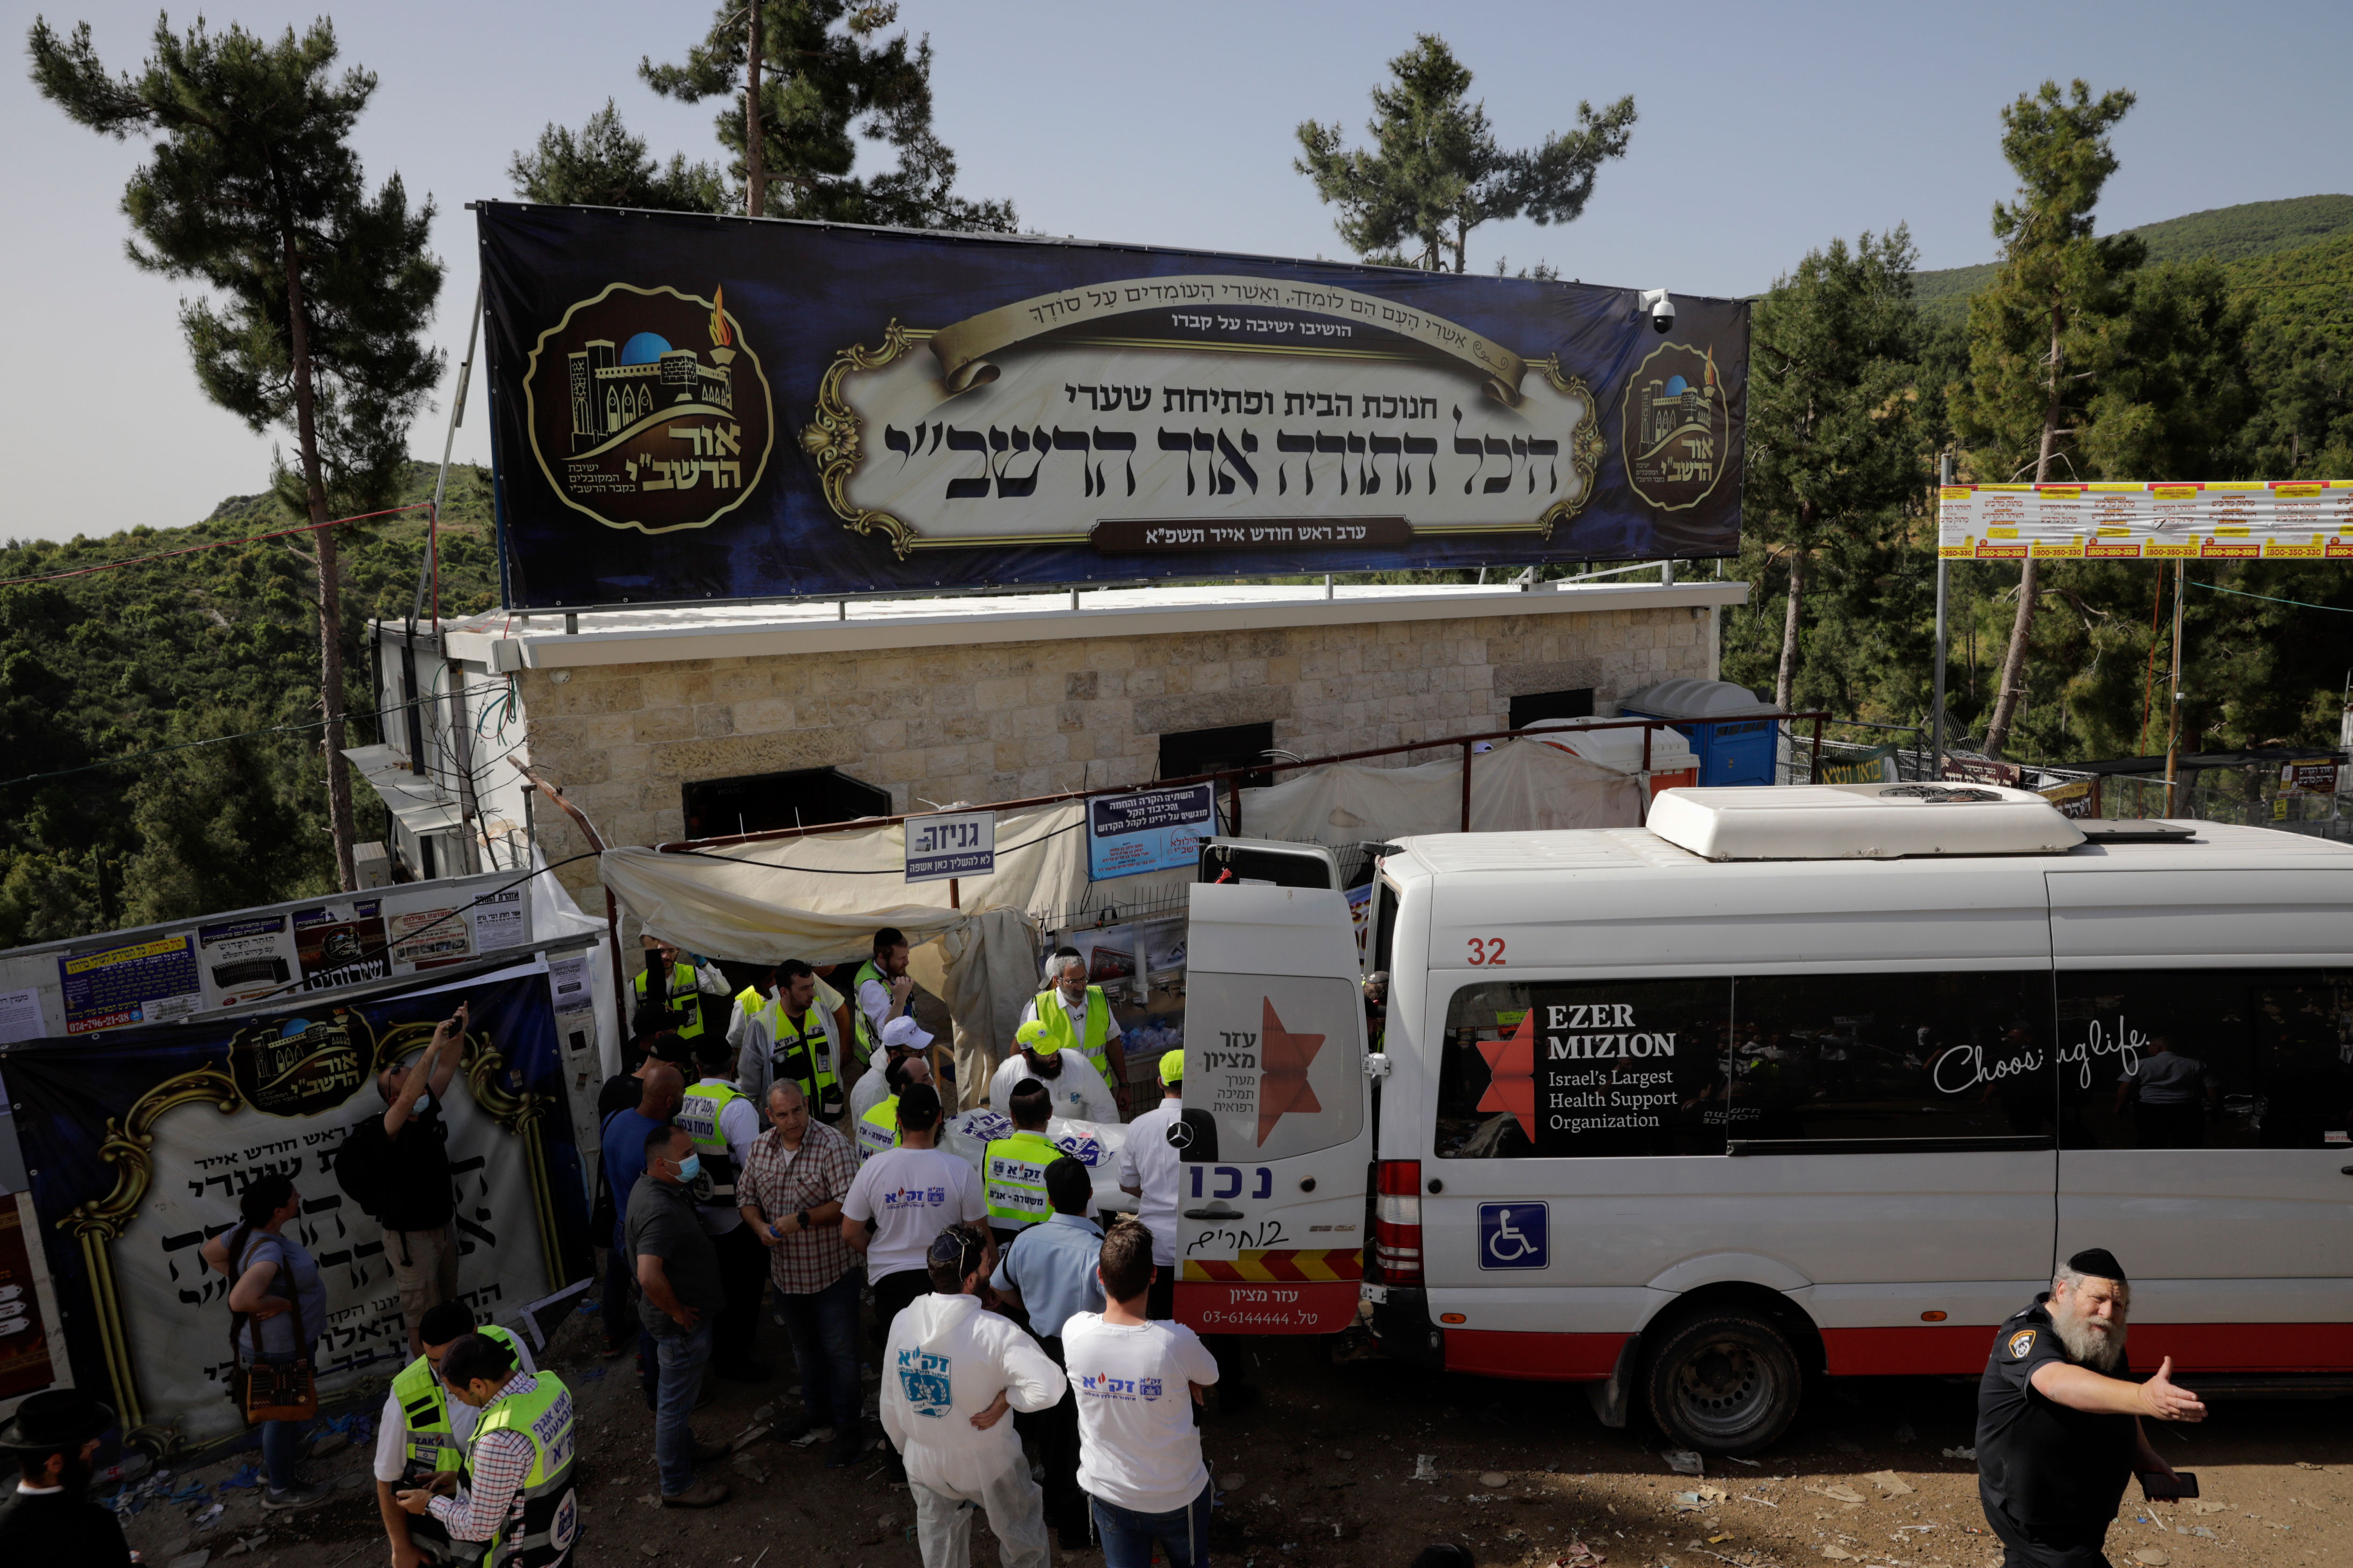 On Friday, rescuers worked to transport the bodies of those who died in the disaster.